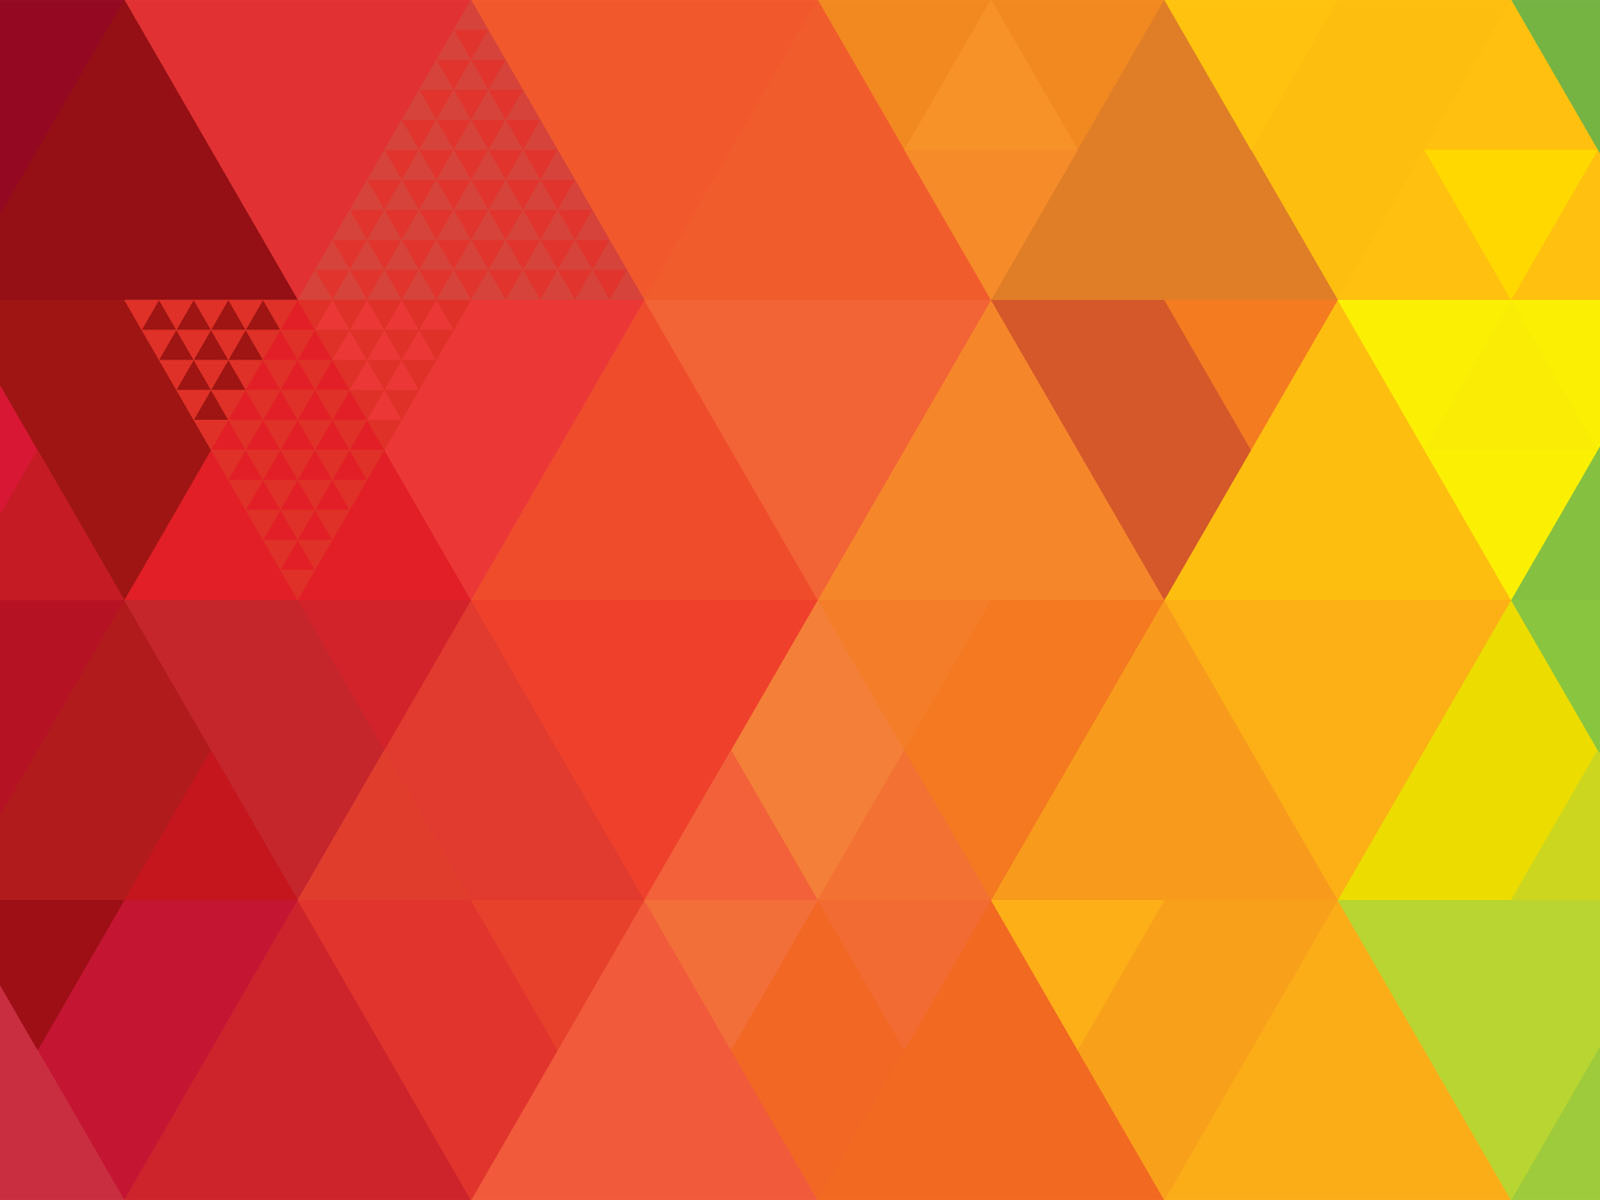 Triangle abstract art ppt backgrounds abstract pattern red triangle abstract art ppt backgrounds toneelgroepblik Choice Image